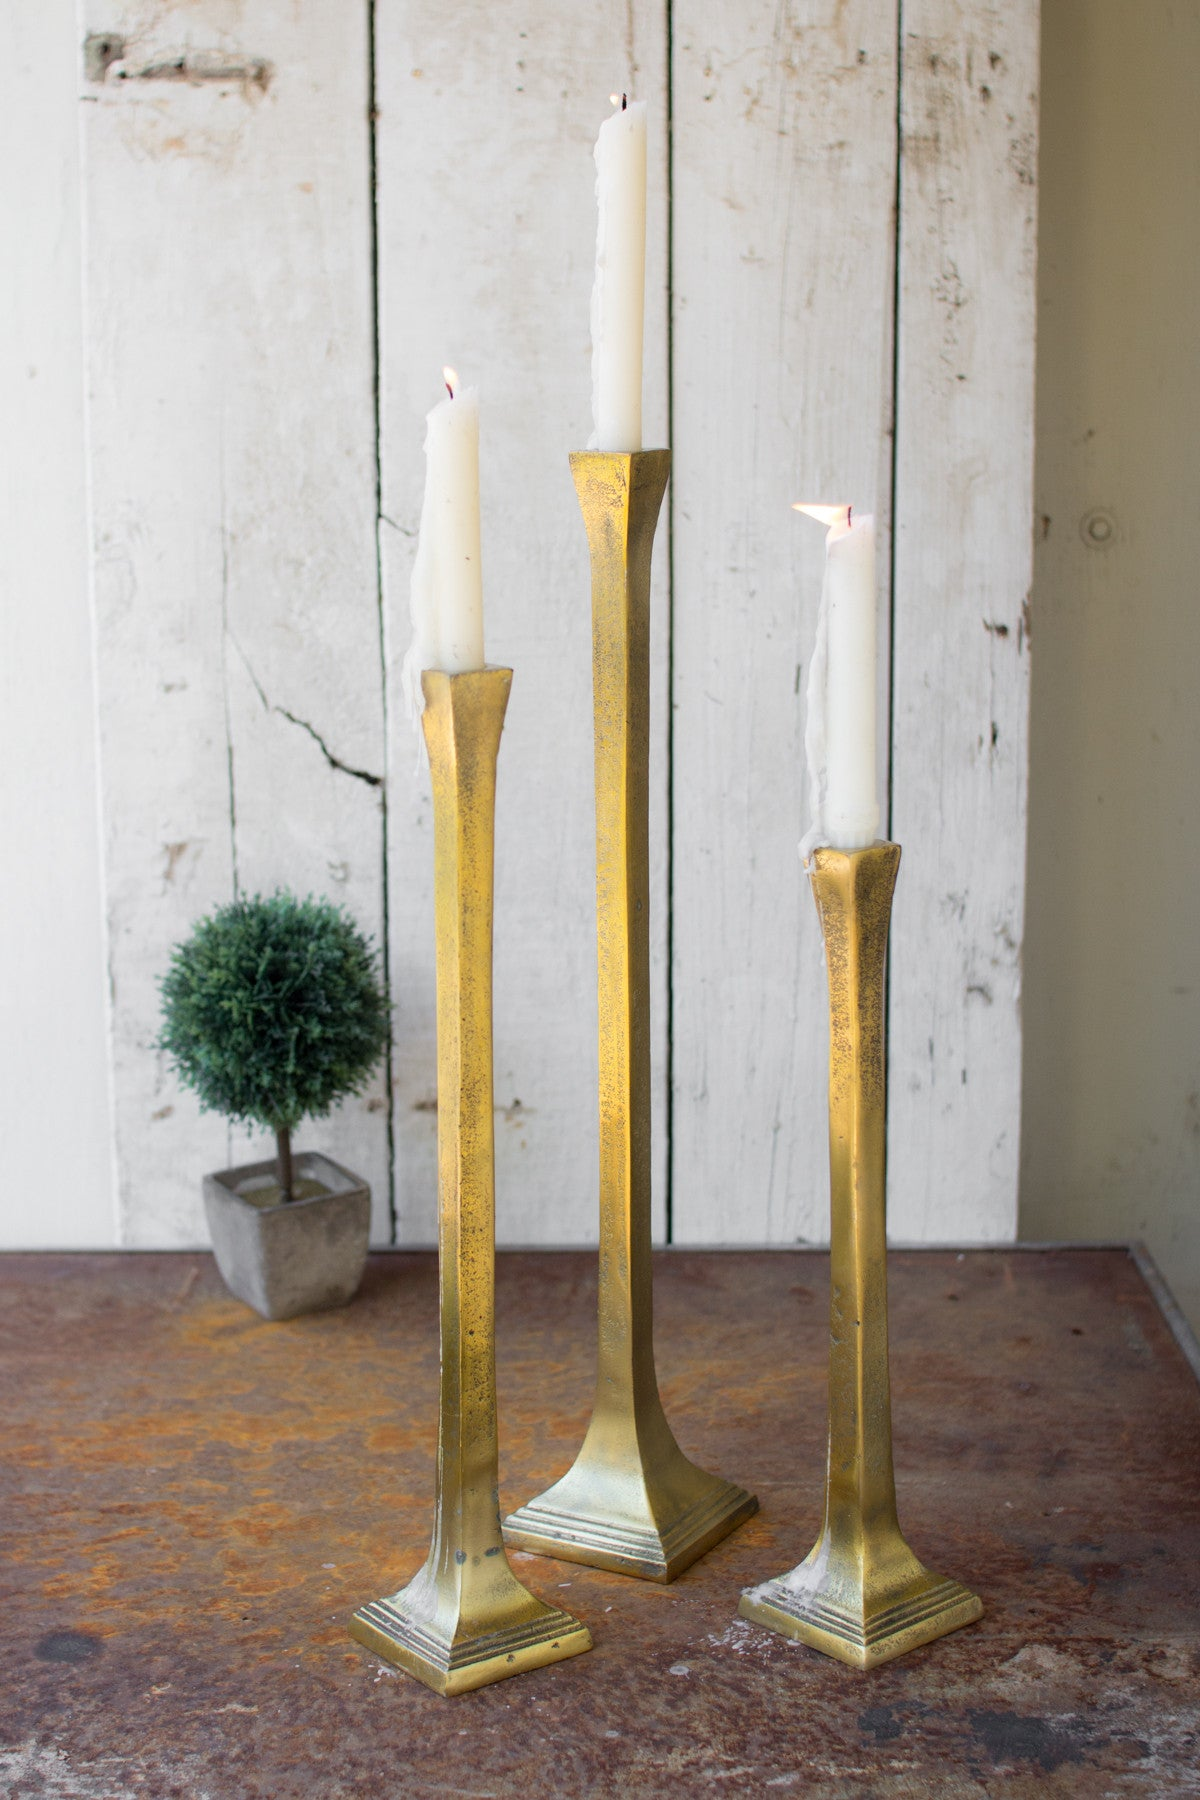 Antique Gold Brass Finish Tall Taper Candle Holders - Set of 3